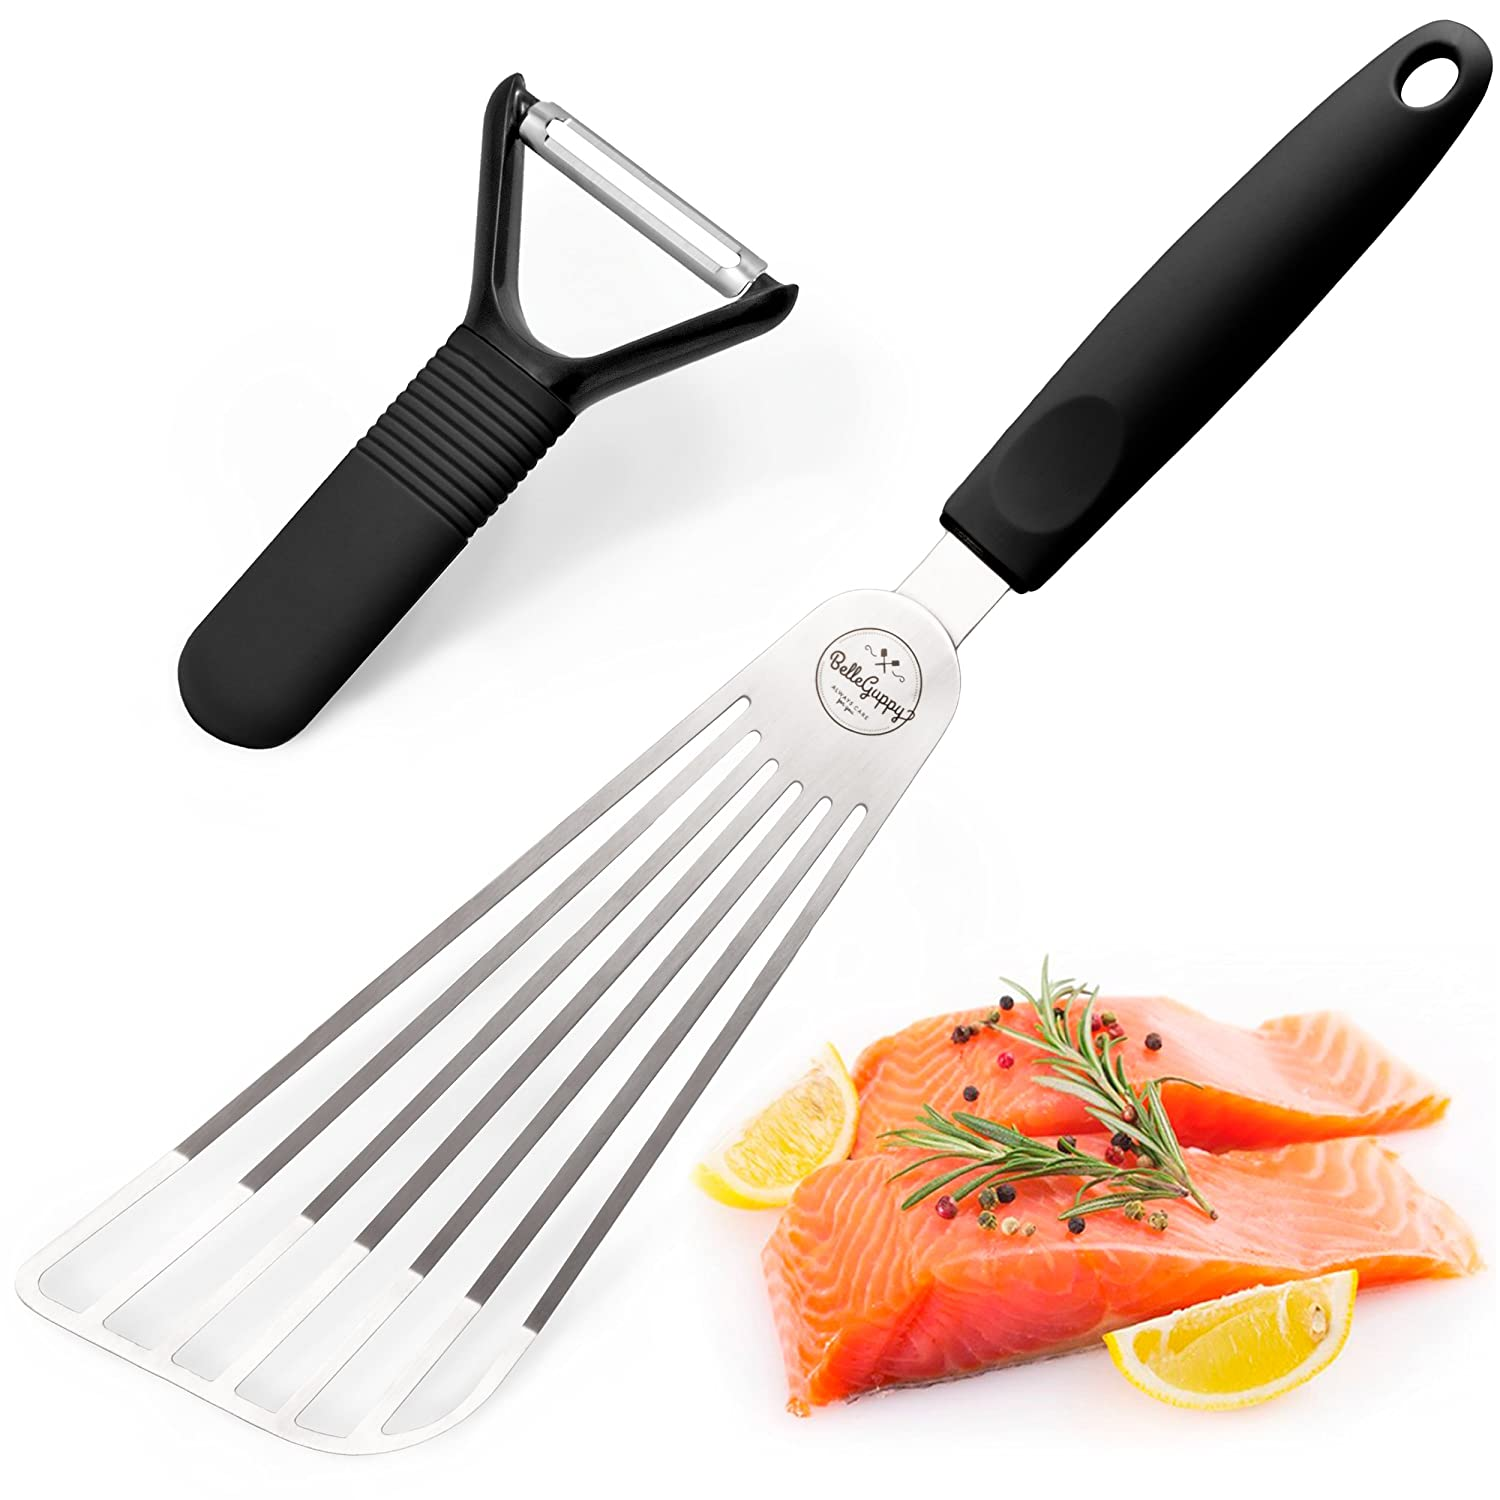 Fish Spatula Stainless Steel, Multipurpose Flexible Slotted Spatula, Non-Slip Silicone Handle for Turning, Frying,Grilling + Transferring – eggs, meat, fish and pancakes by BelleGuppy (black)